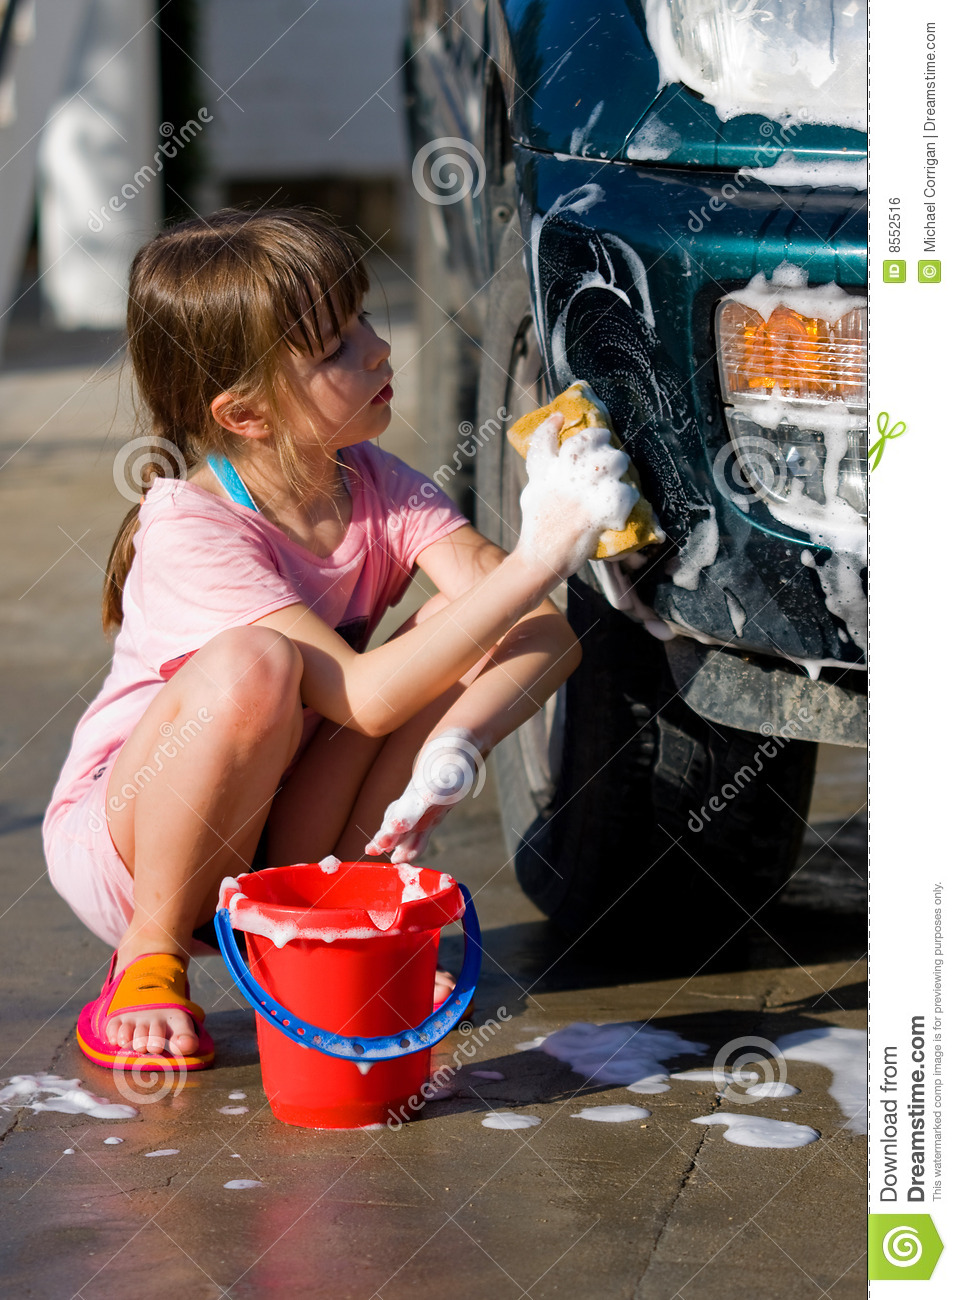 Young Girl With Soap Suds Carwash Royalty Free Stock Image